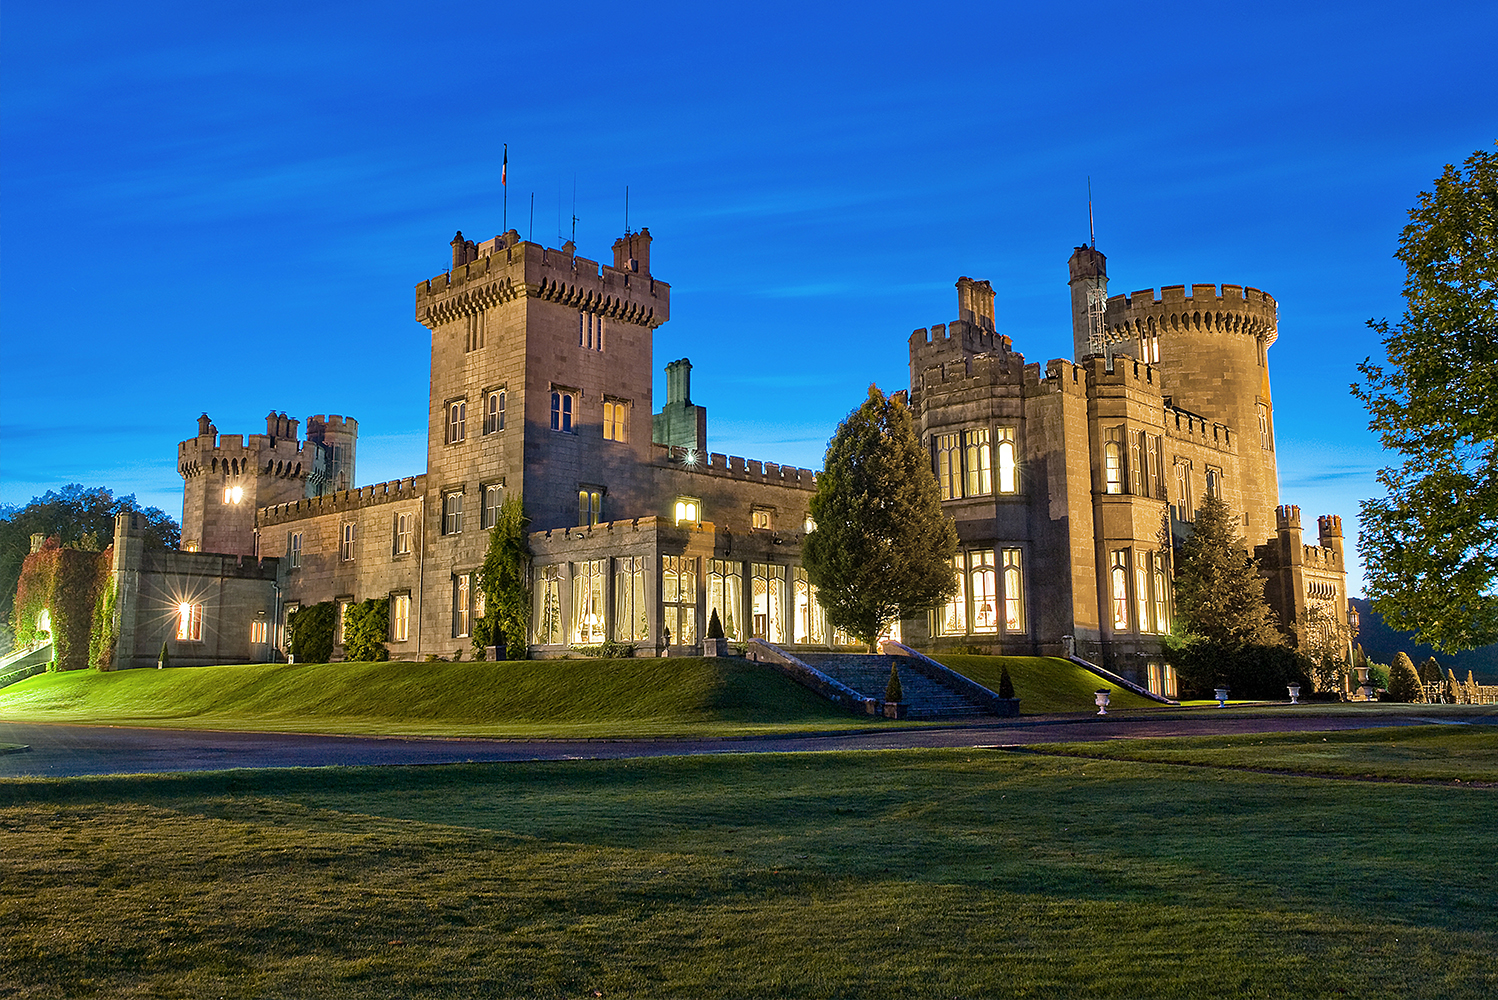 Dromoland Castle, the 16th century castle hotel in County Clare, Ireland completed the final phase of a €20 million refurbishment.